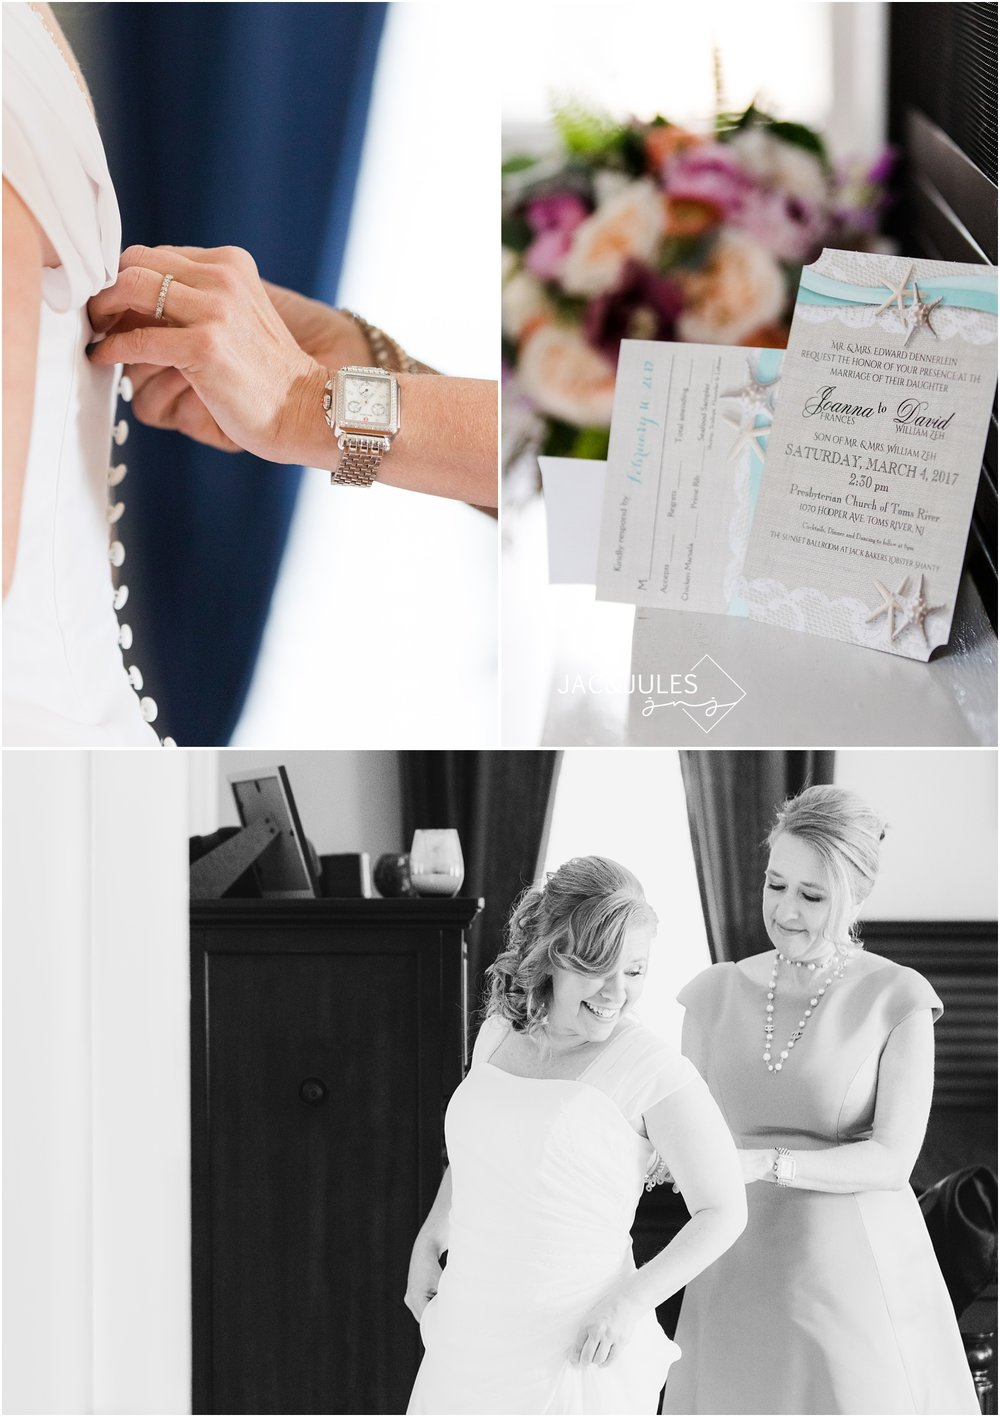 Maid of honor helps the bride into her dress.  wedding invitations and bridal bouquet.